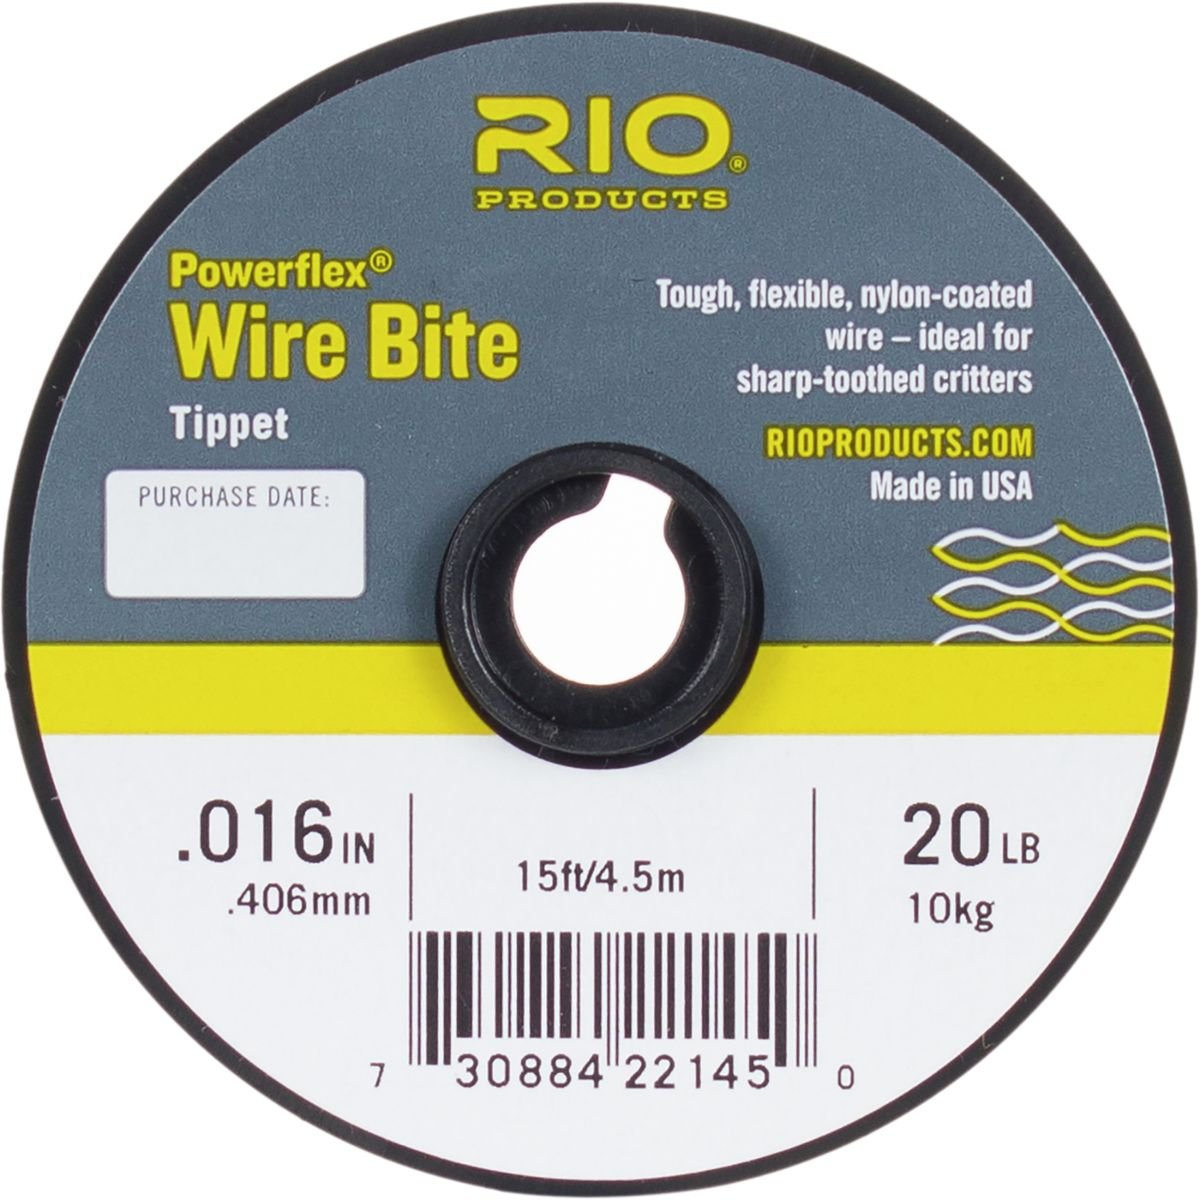 Amazon rio powerflex wire bite tippet spools nylon coated amazon rio powerflex wire bite tippet spools nylon coated sharp toothed fly fishing fly leaders and tippet materials sports outdoors geenschuldenfo Gallery